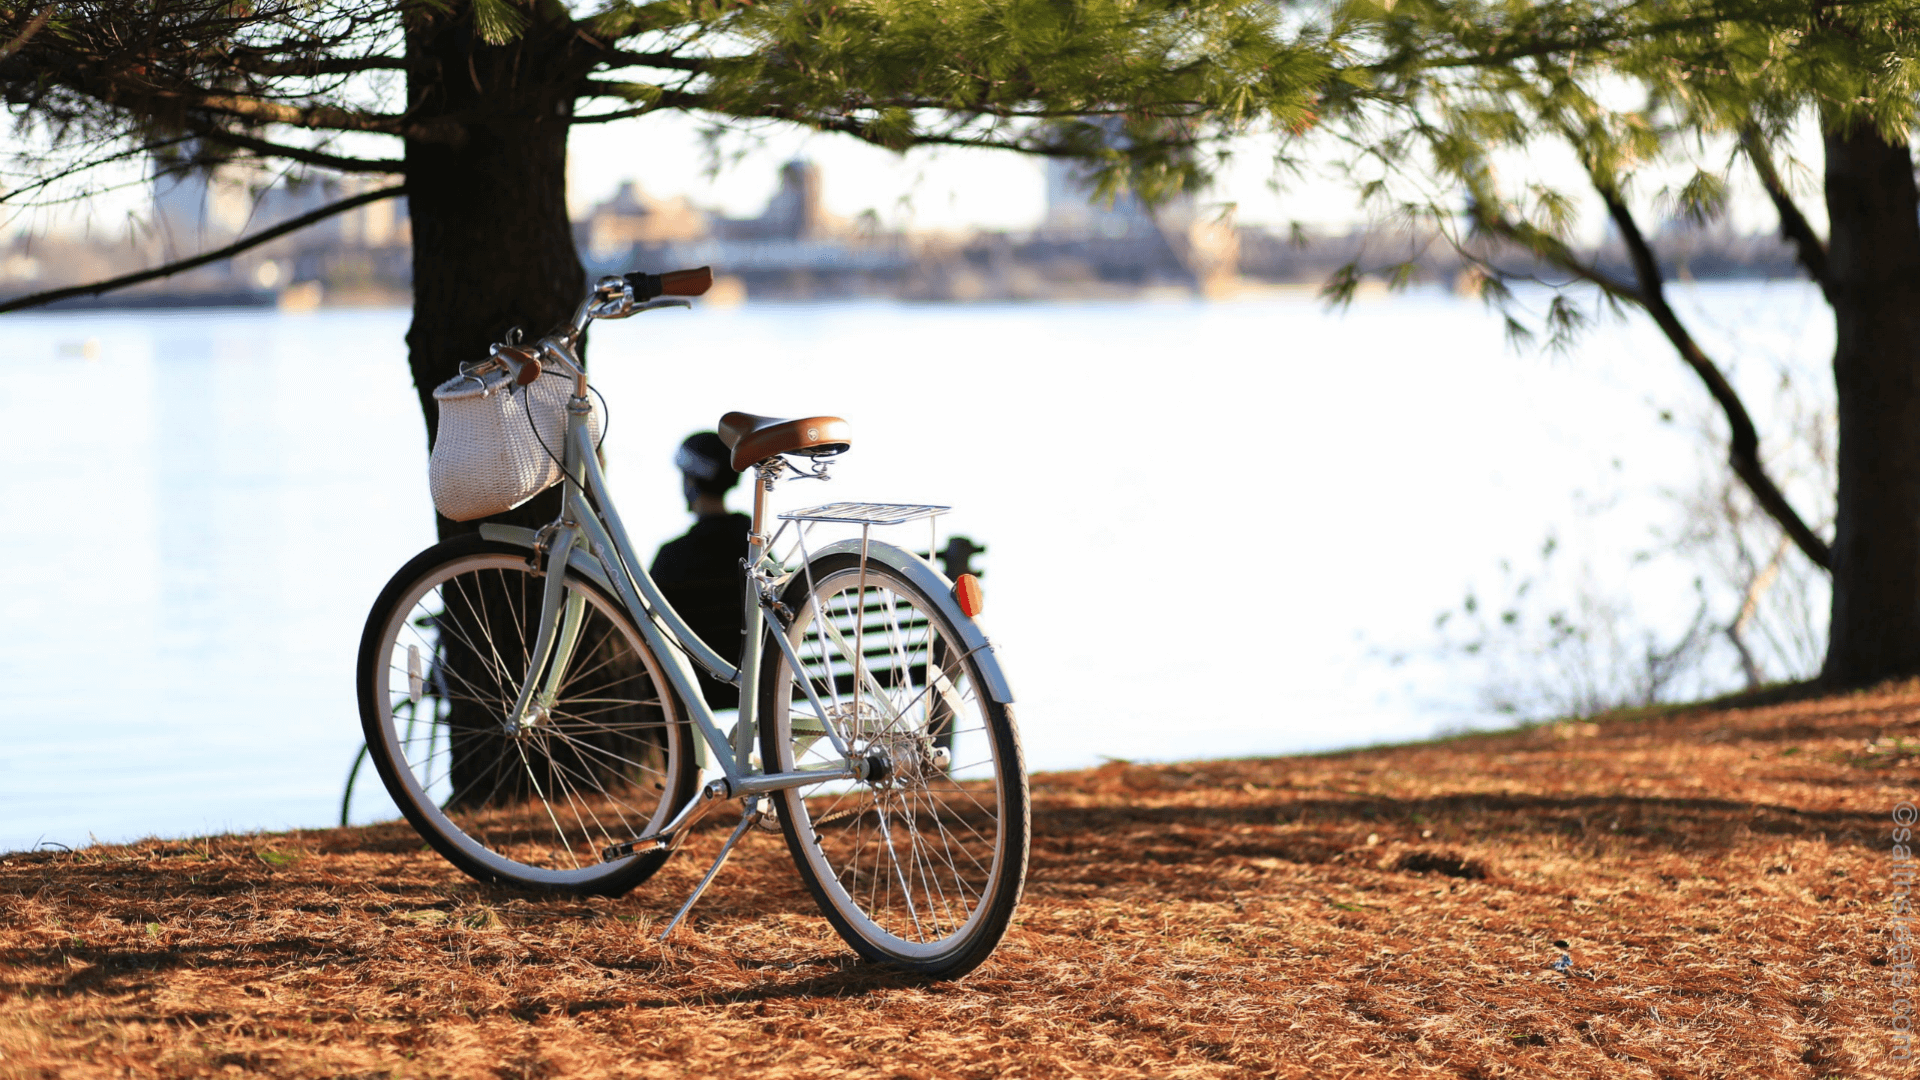 Alternativas à praia - Foto: unsplash